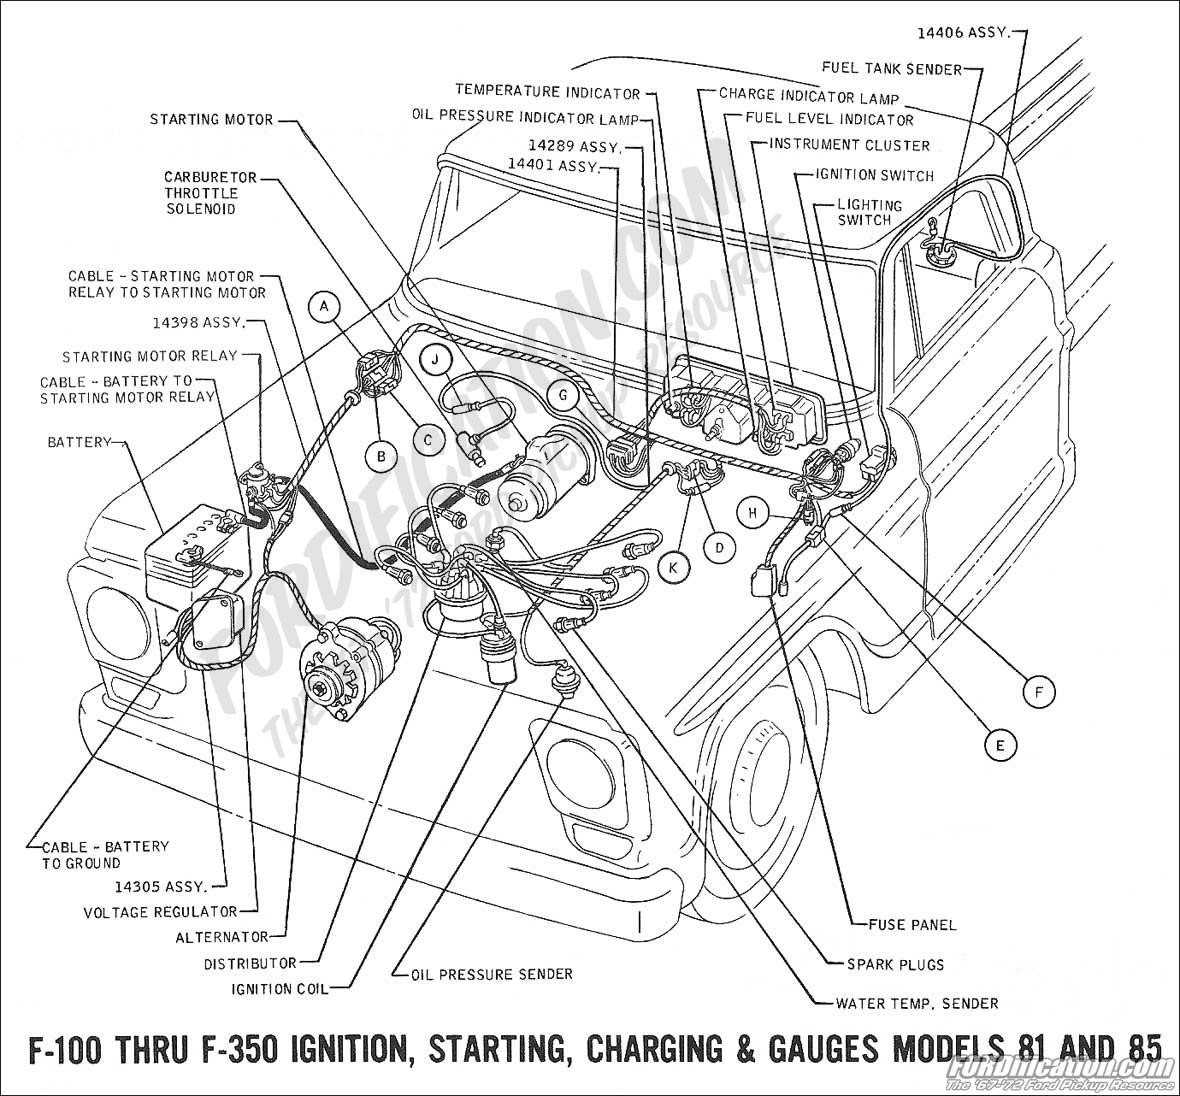 wiring 1969charging 69 f100 wiring diagram 1973 ford f100 wiring diagram \u2022 wiring  at bayanpartner.co